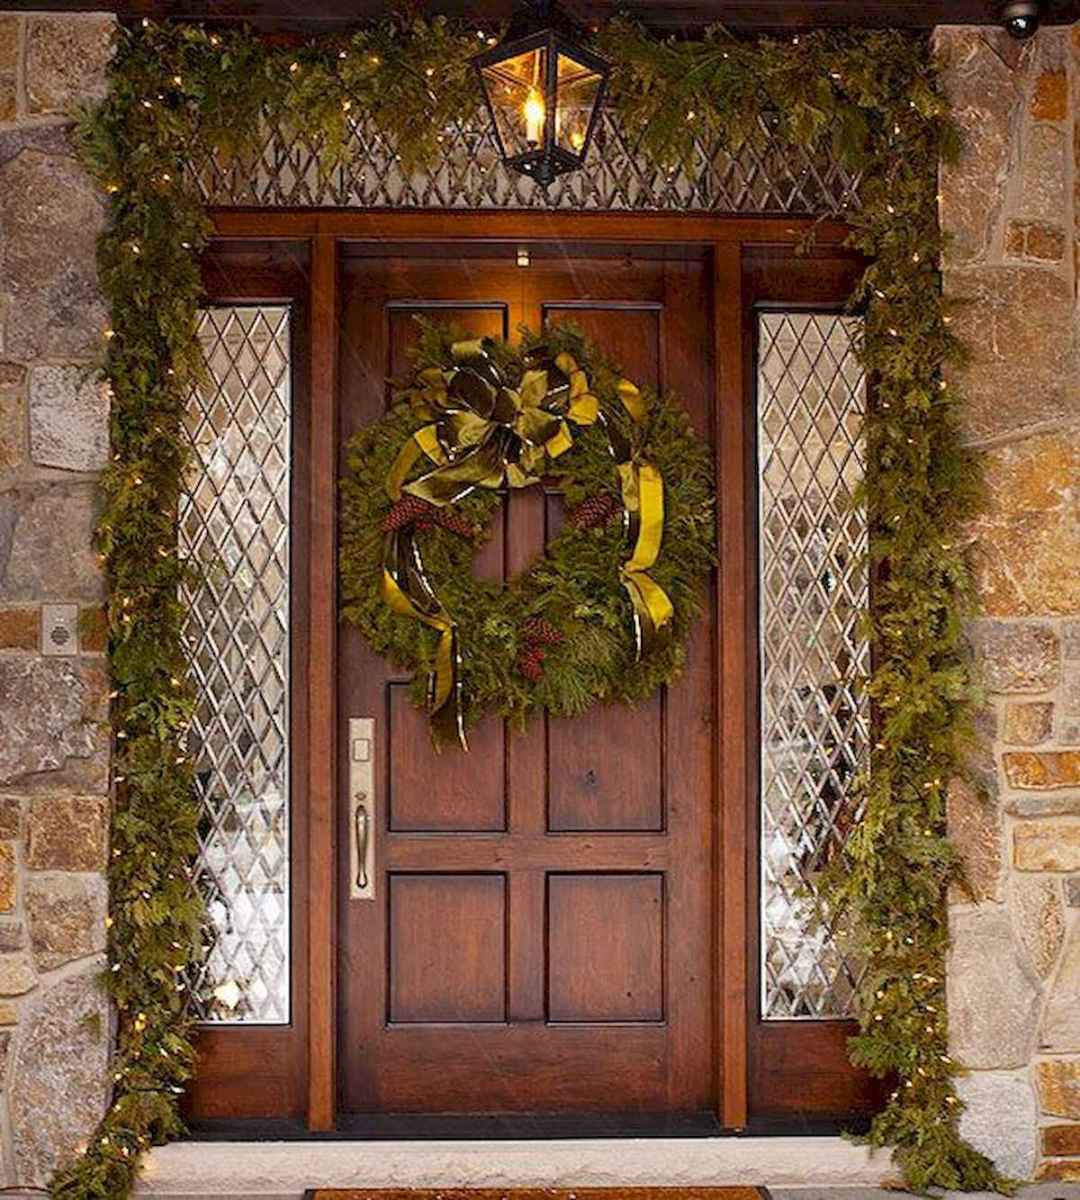 50 Awesome Christmas Front Porch Decor Ideas And Design (18)